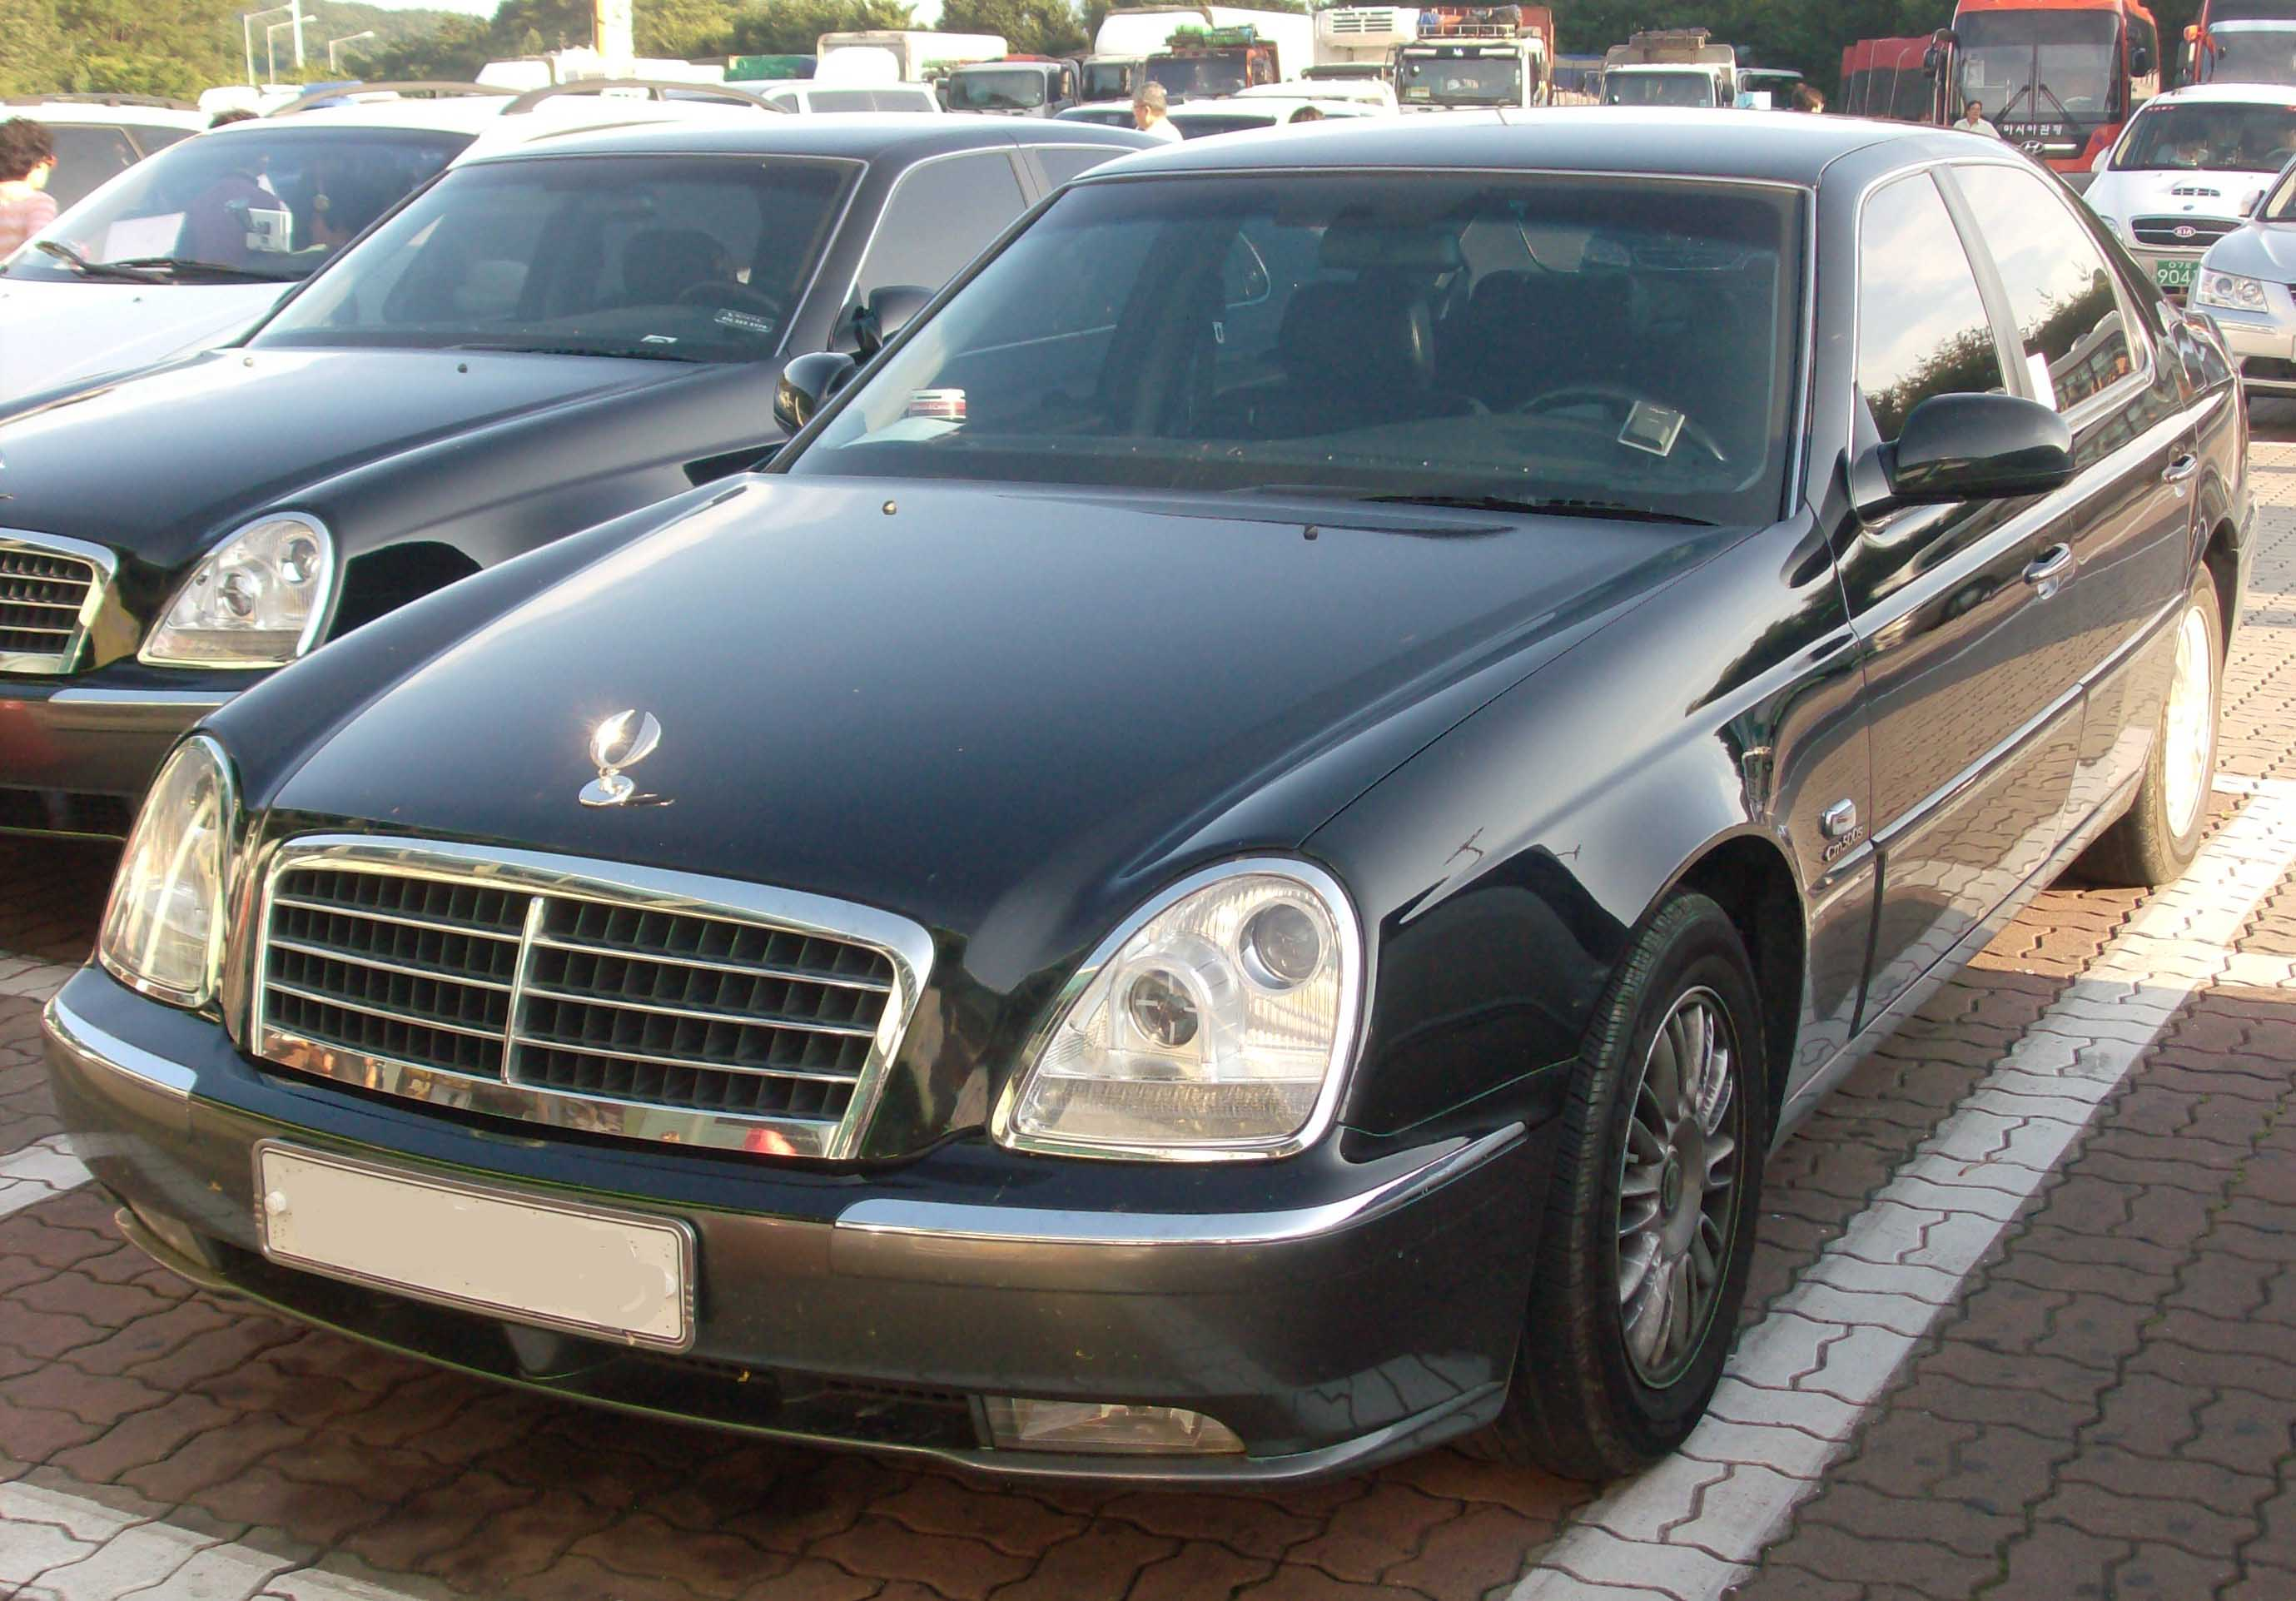 ssangyong chairman (w124) 2012 images